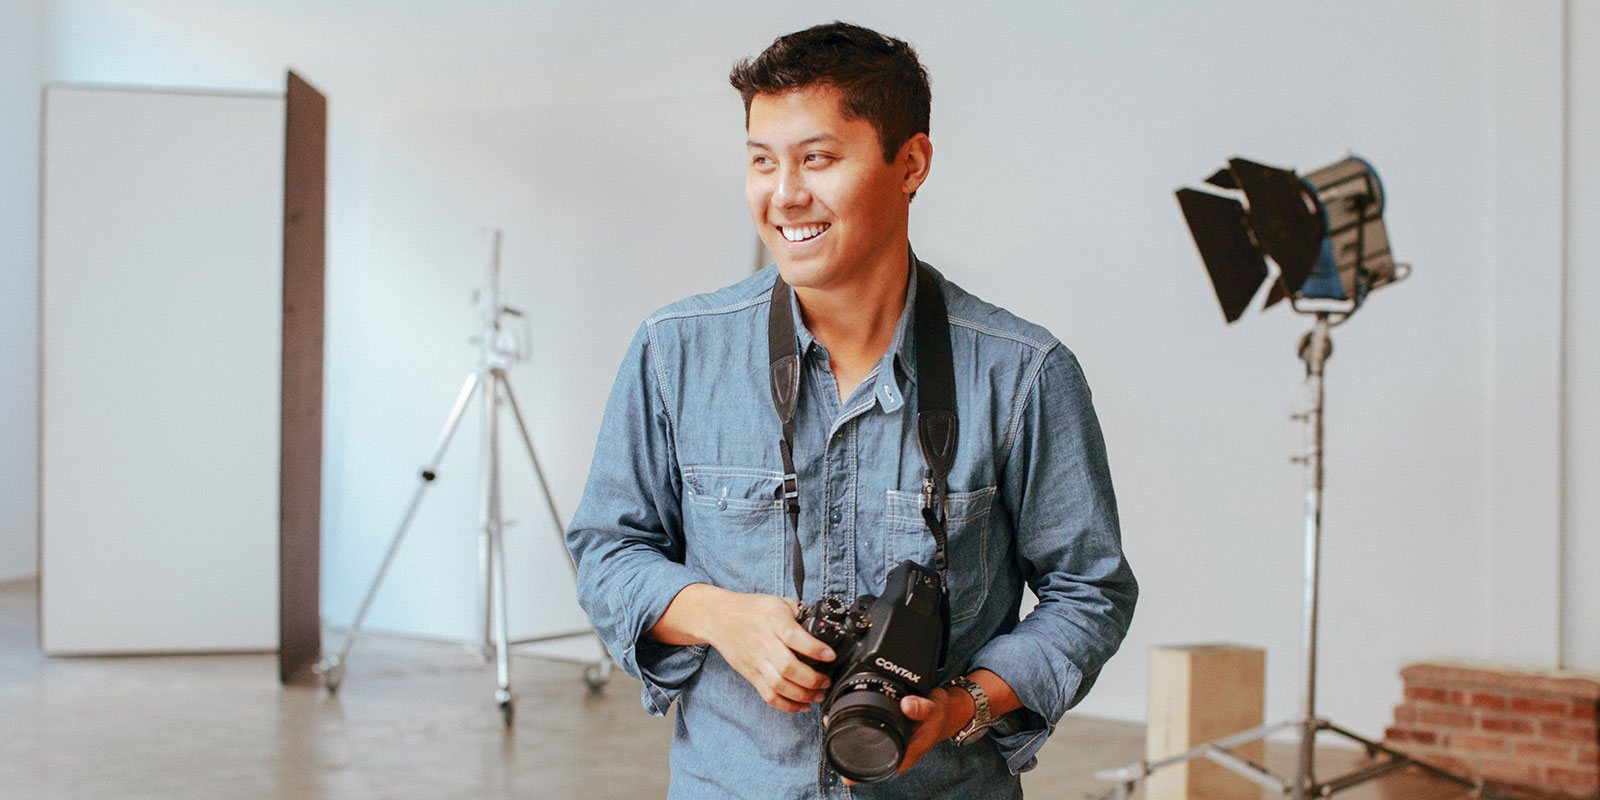 USD alumnus and photographer Justin Chung